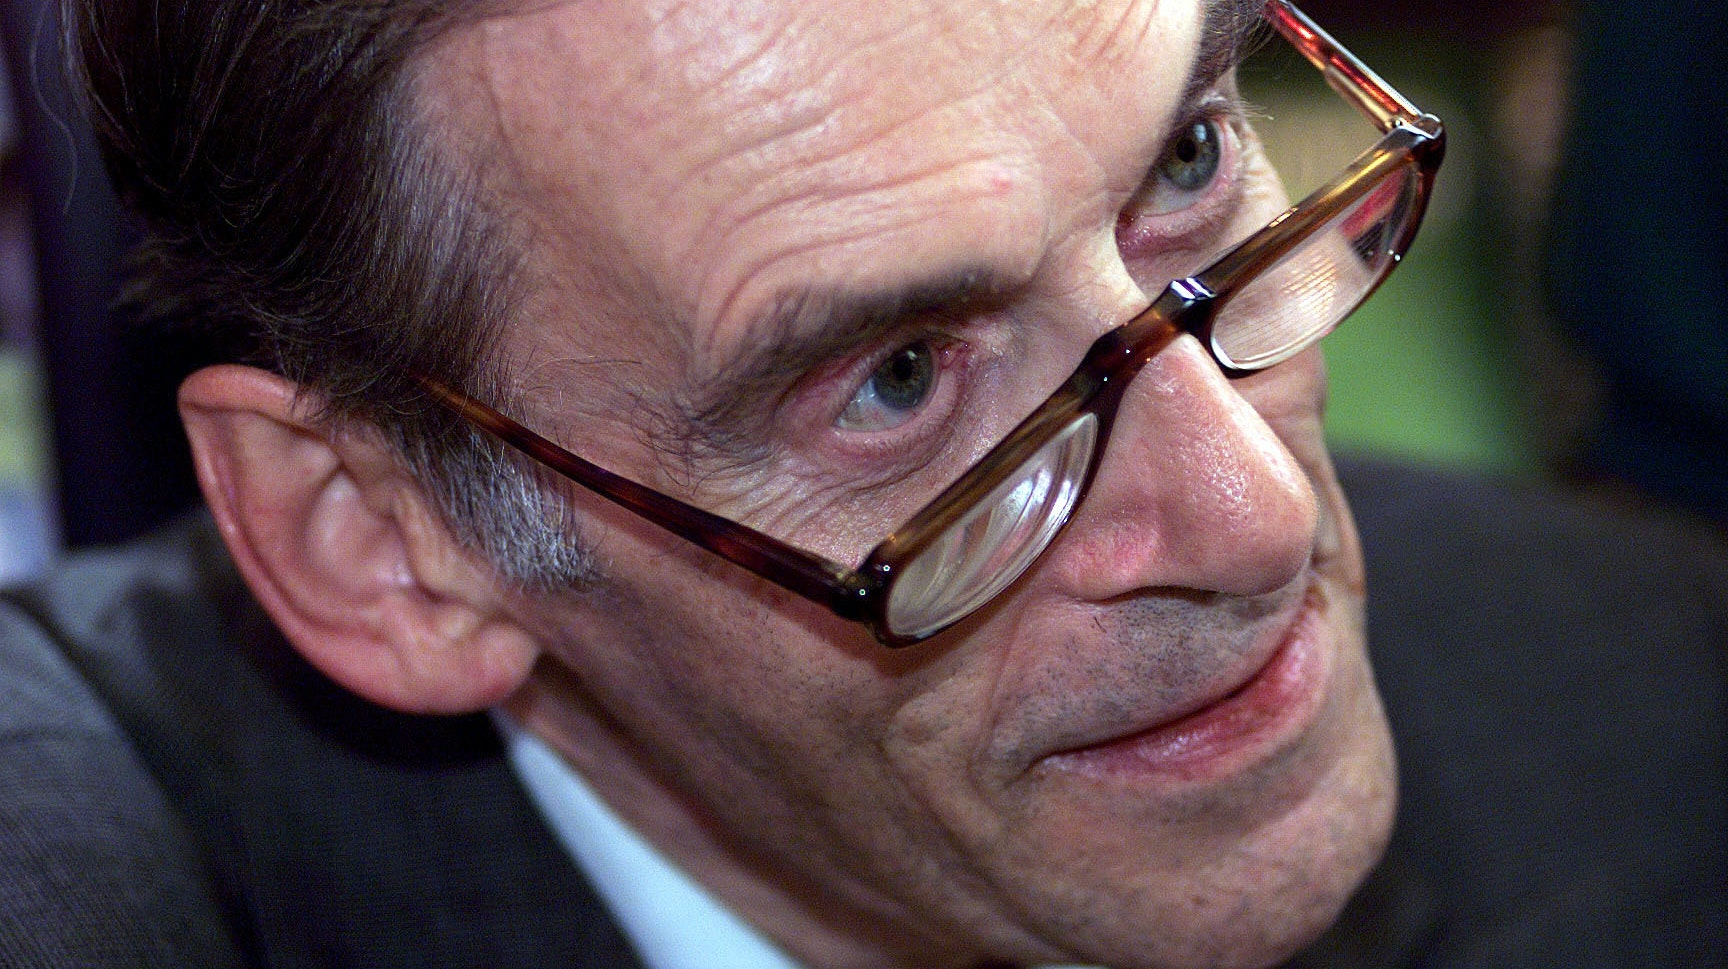 A chance of justice, says Jeremy Thorpe's lover as 'hitman' traced